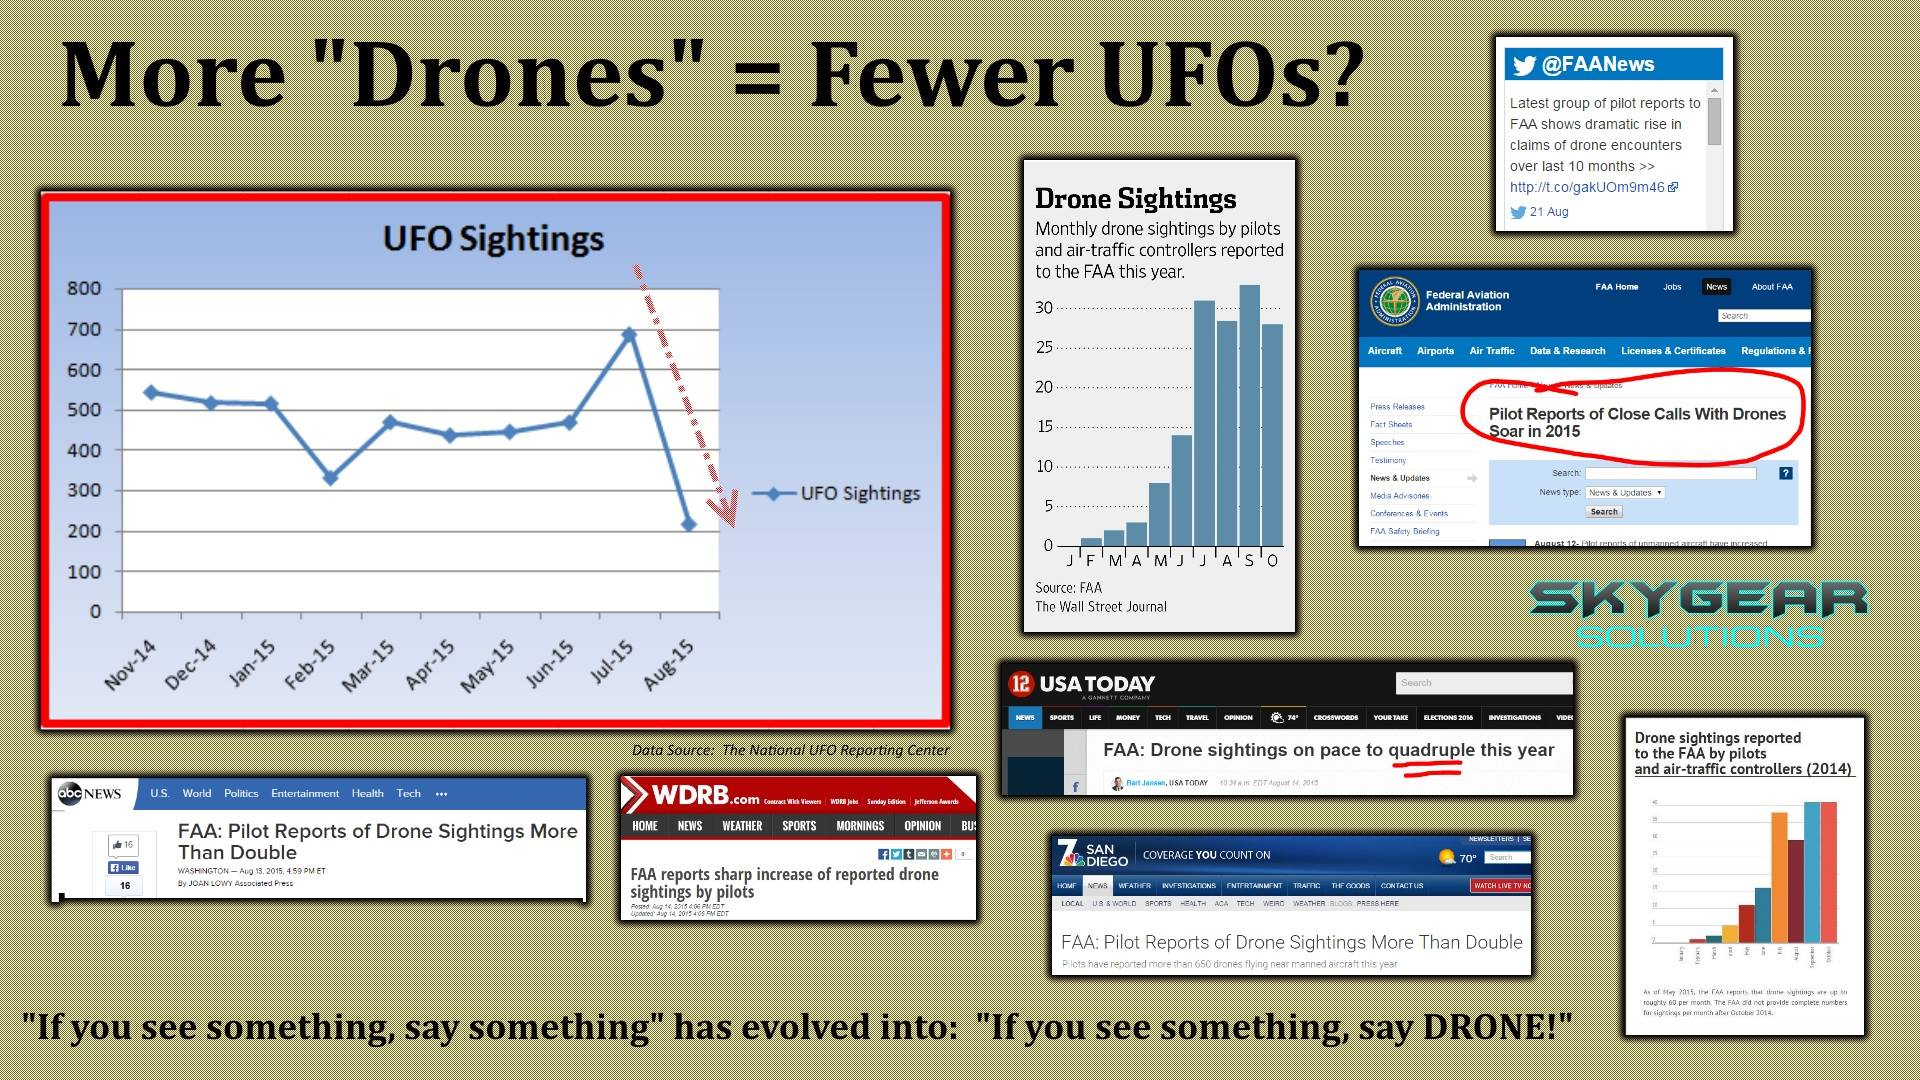 More Drones = Fewer UFOs